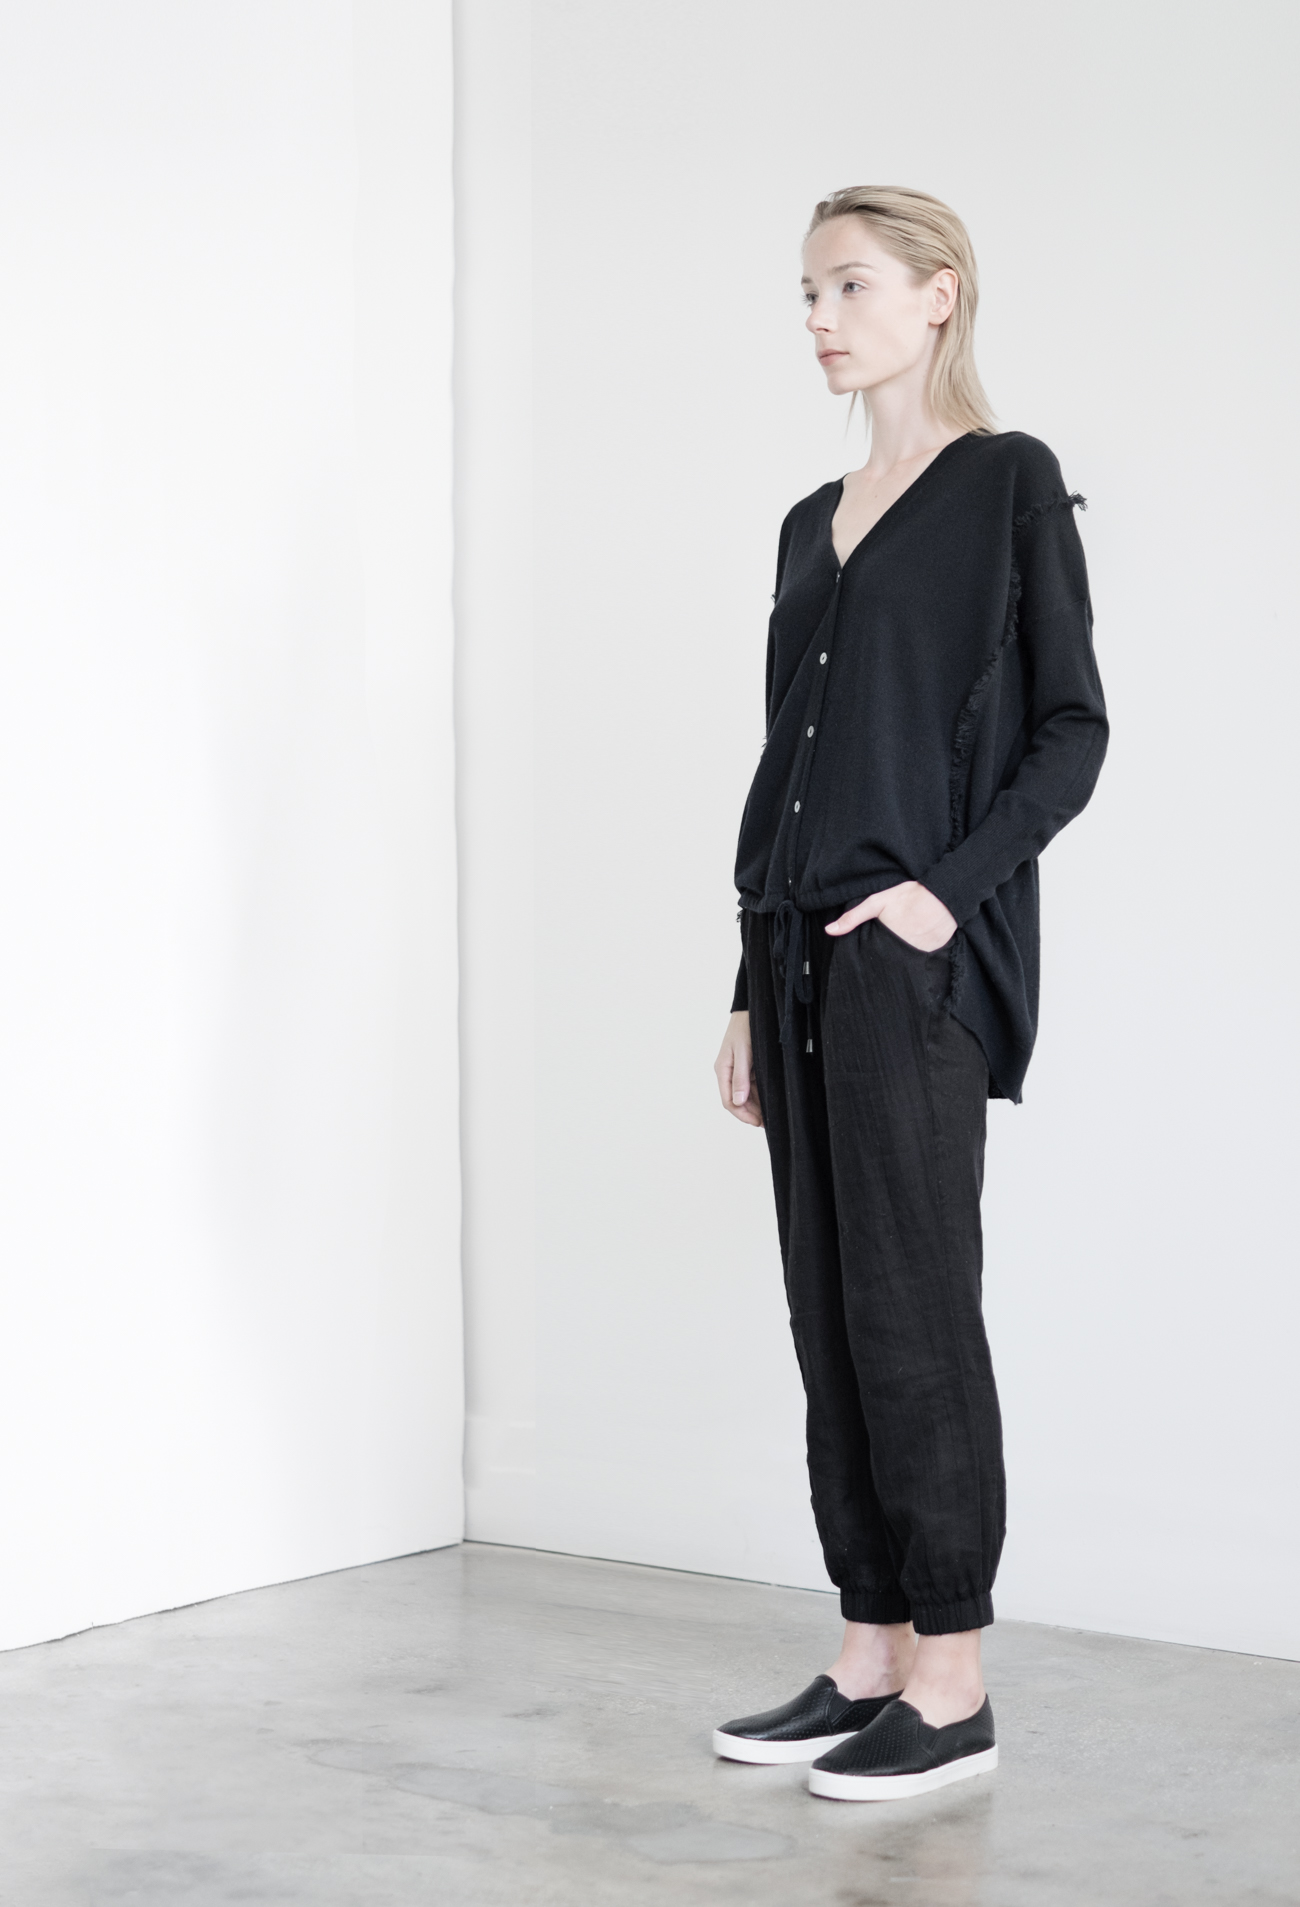 LOOK 48   TOP:   2201  / Noir  -     Vee cardigan with ruched front and waist in fine gauge cashmere. WS:  177   BOTTOM:   2290  / Noir  -   Jogger pants in 100% Cotton woven dbl. layer gauze. WS:  88